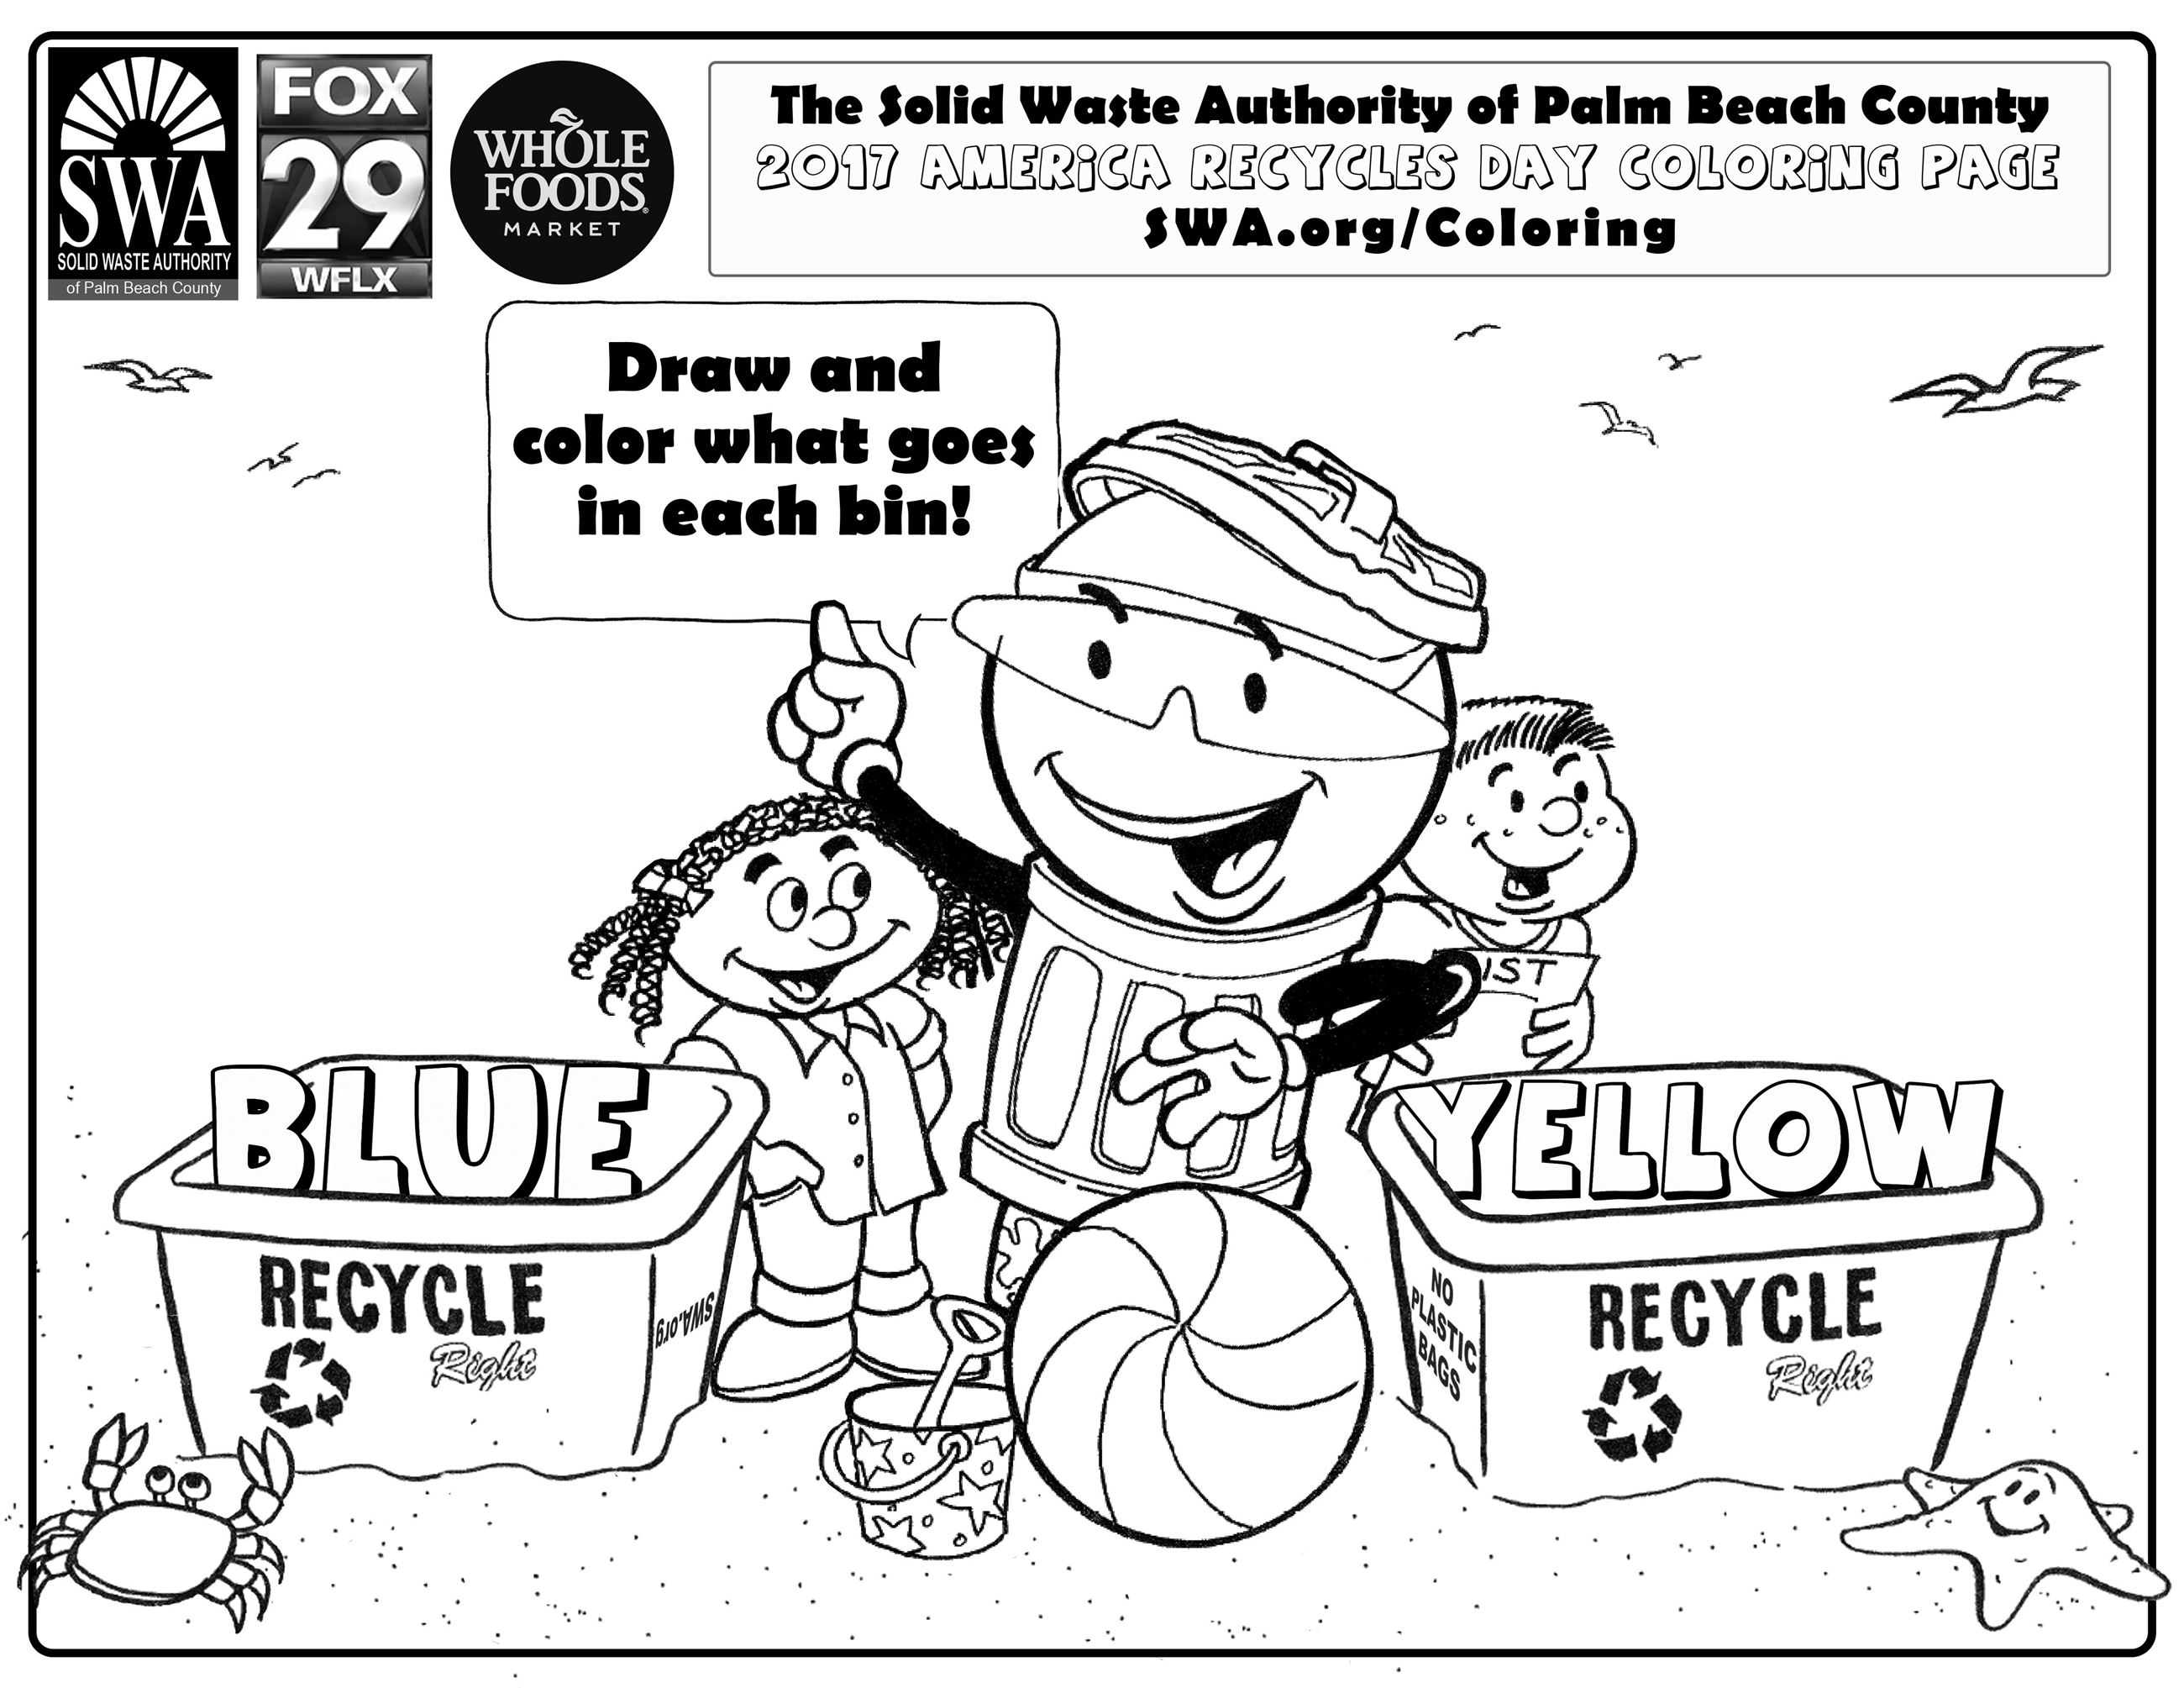 Colouring pages for recycling - The Easiest Way To Celebrate Earth Day Saturday Is By Downloading The Recycling Themed Coloring Page From Swa Org Coloring